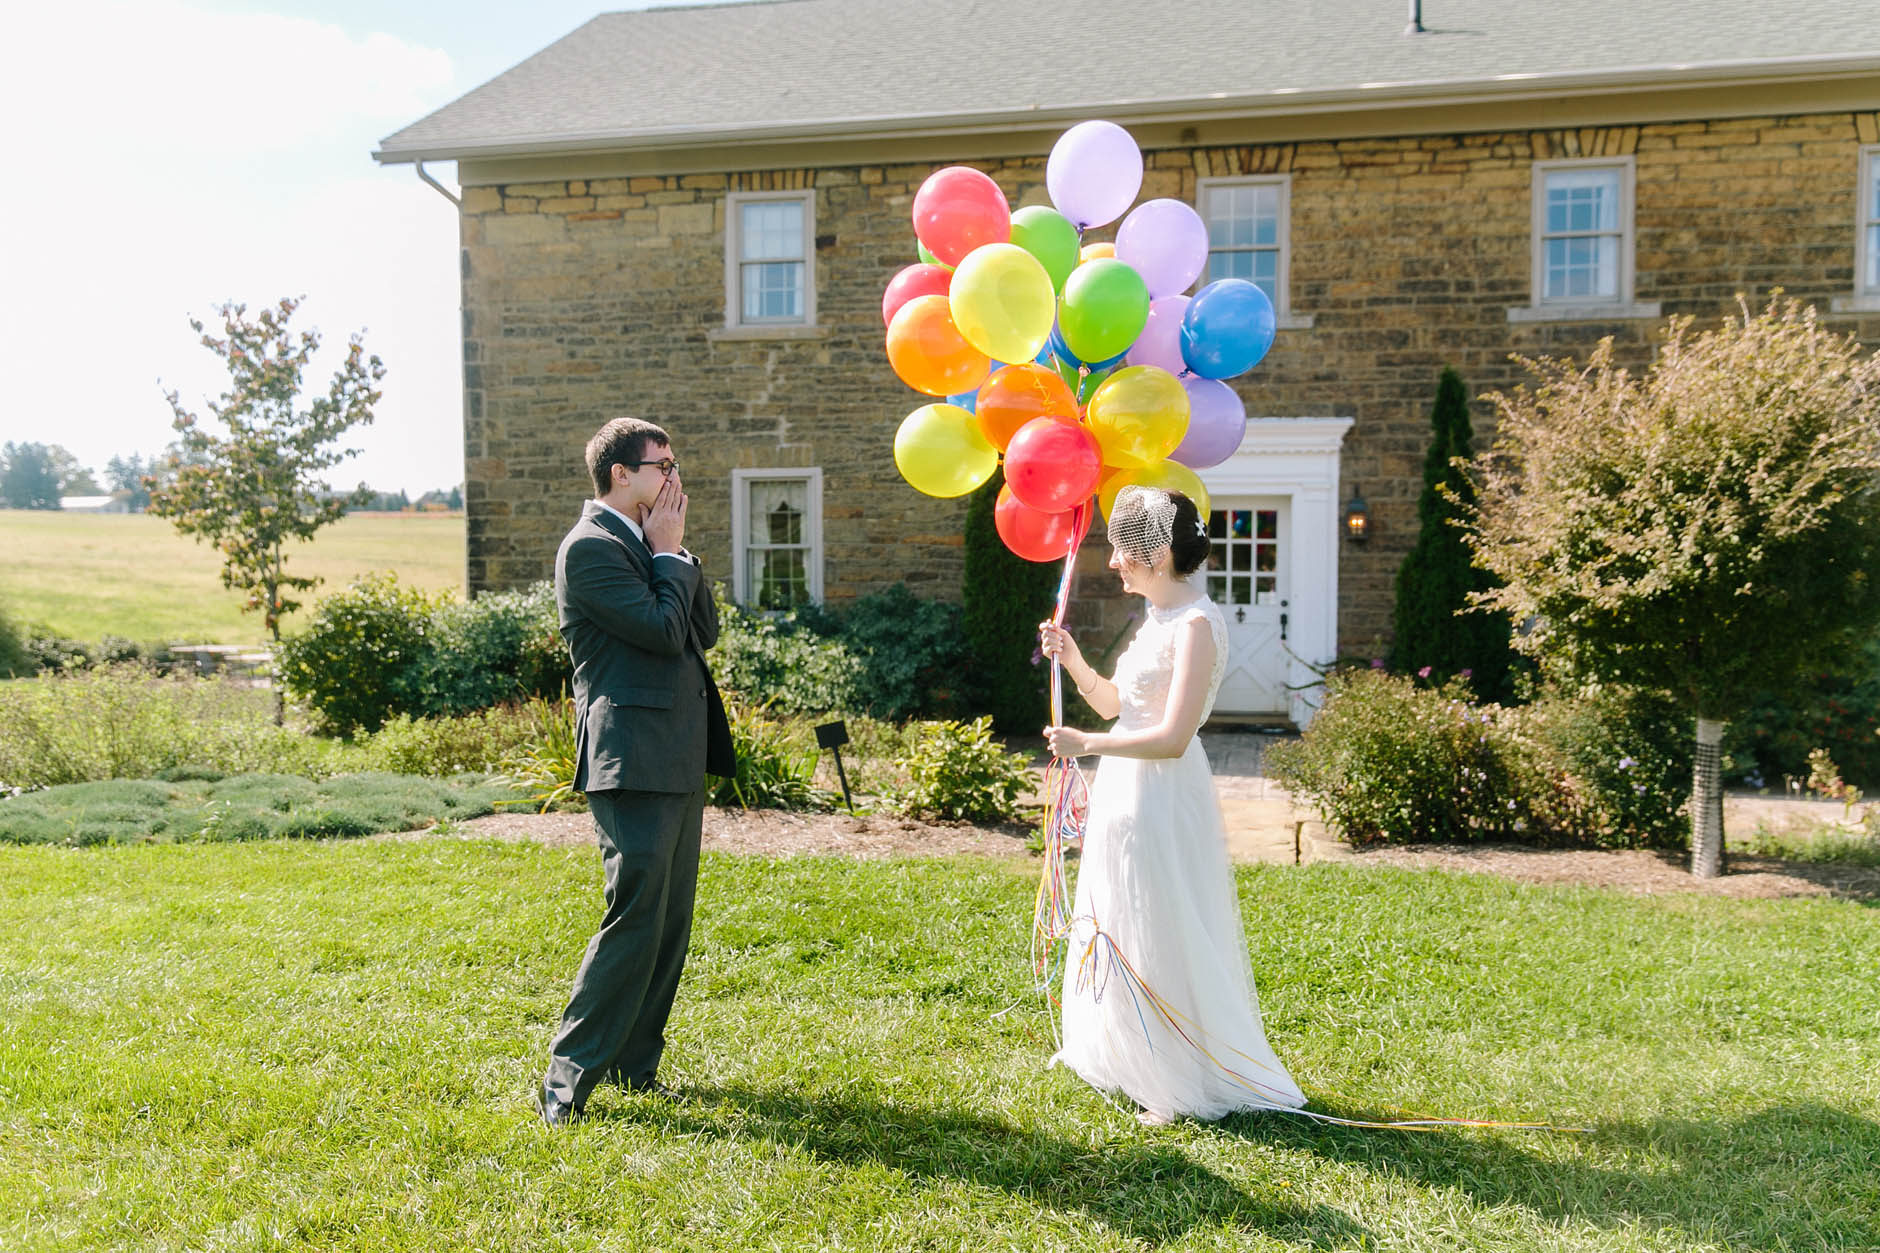 A fall wedding at the Excelsior Room and Secrest Arboretum in Wooster with Rachel & Matt.